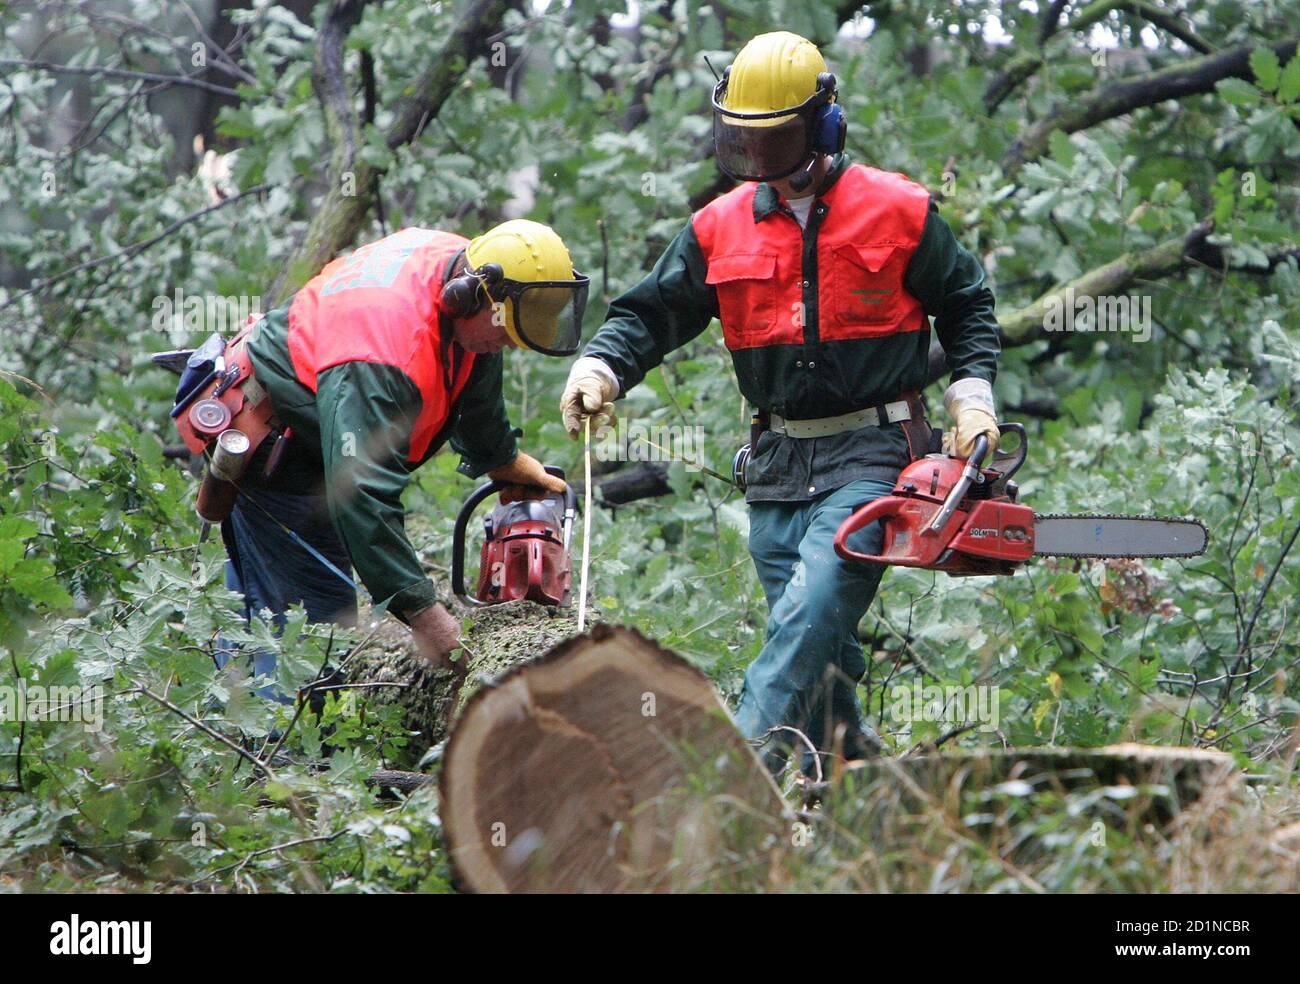 "German lumberjacks cut trees in a sealed-off forest area called ""Bannwald"" near Frankfurt's Rhine-Main airport September 12, 2005. Construction works for a new runway started this morning as German police expect protestors and environmental activists against the extension of the Airport. REUTERS/Vincent Kessler  vk/TY Stock Photo"